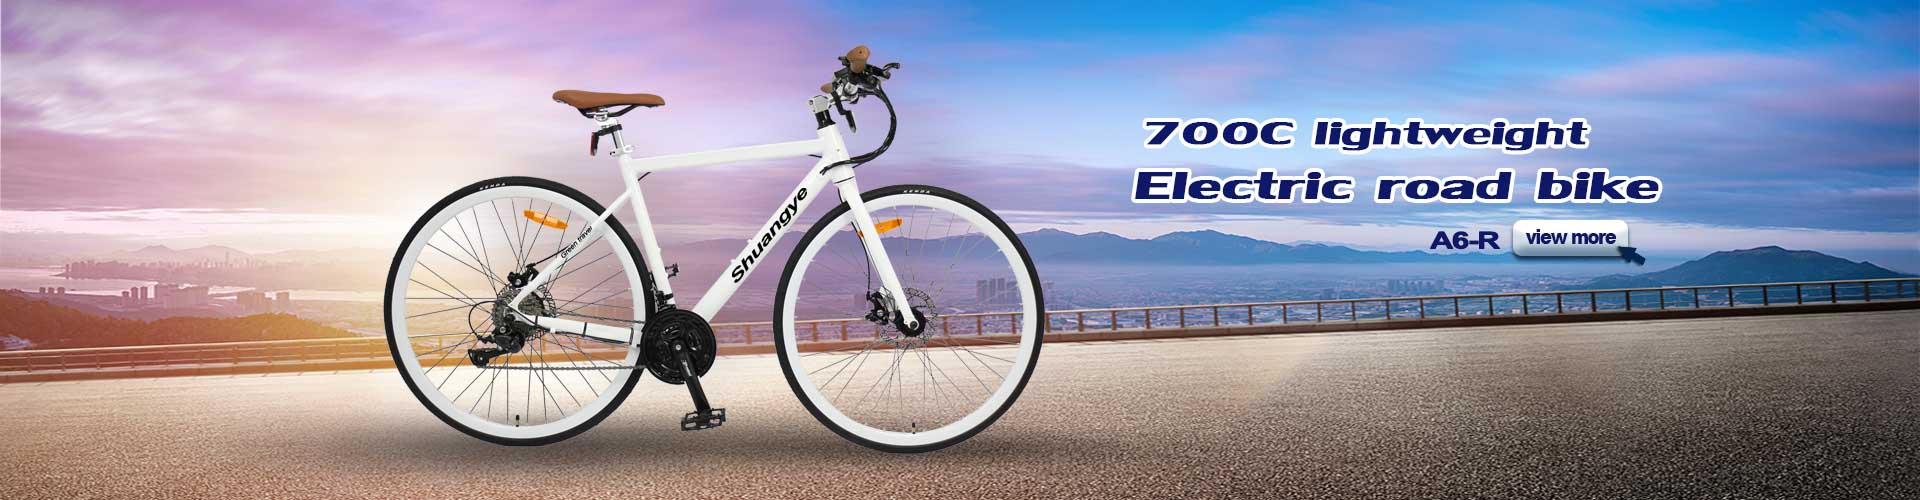 electric road bike